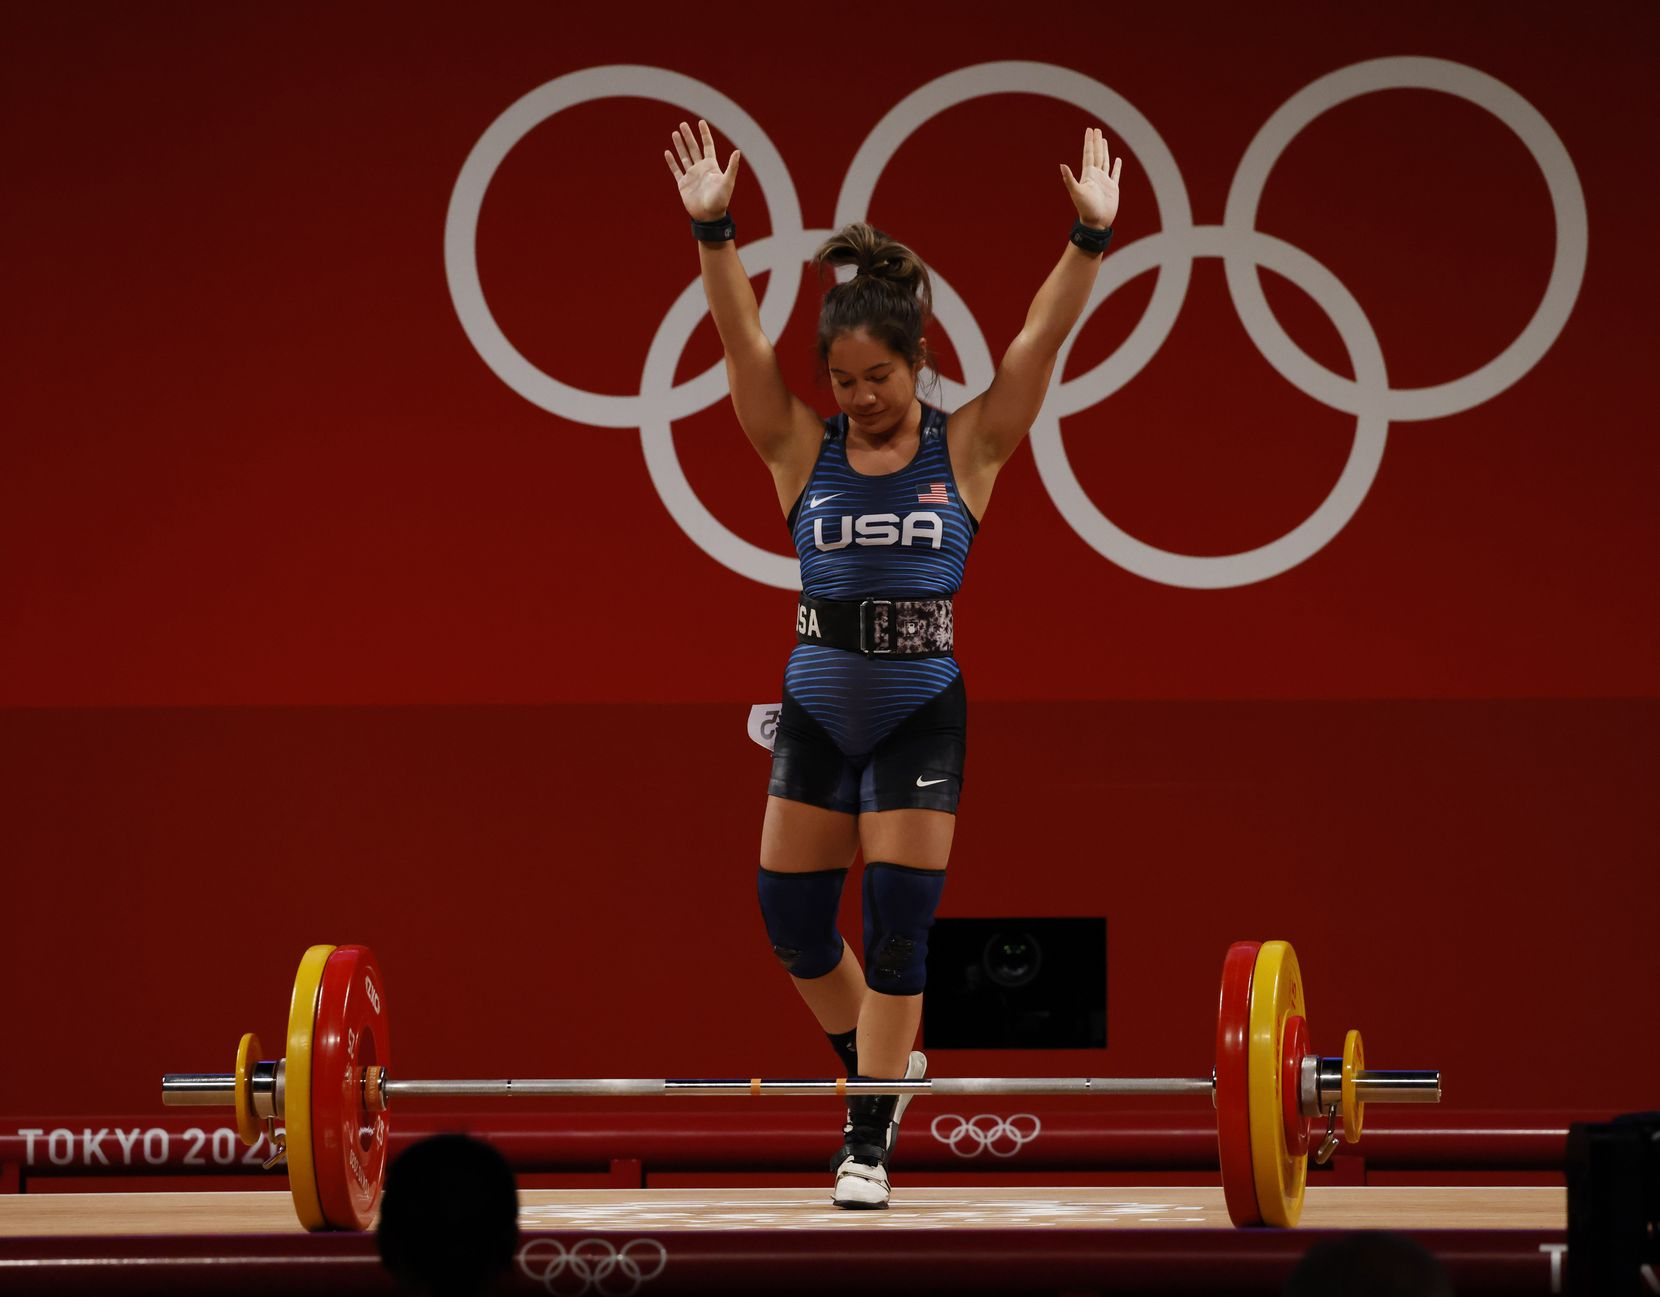 USA's Jourdan Delacruz waves after an unsuccessful attempt in lifting 108 kg on her third attempt in the clean and jerk round during the women's 49 kg weightlifting final during the postponed 2020 Tokyo Olympics at Tokyo International Forum on Saturday, July 24, 2021, in Tokyo, Japan. Delacruz received a no-lift on all three attempts of the clean and jerk round. (Vernon Bryant/The Dallas Morning News)